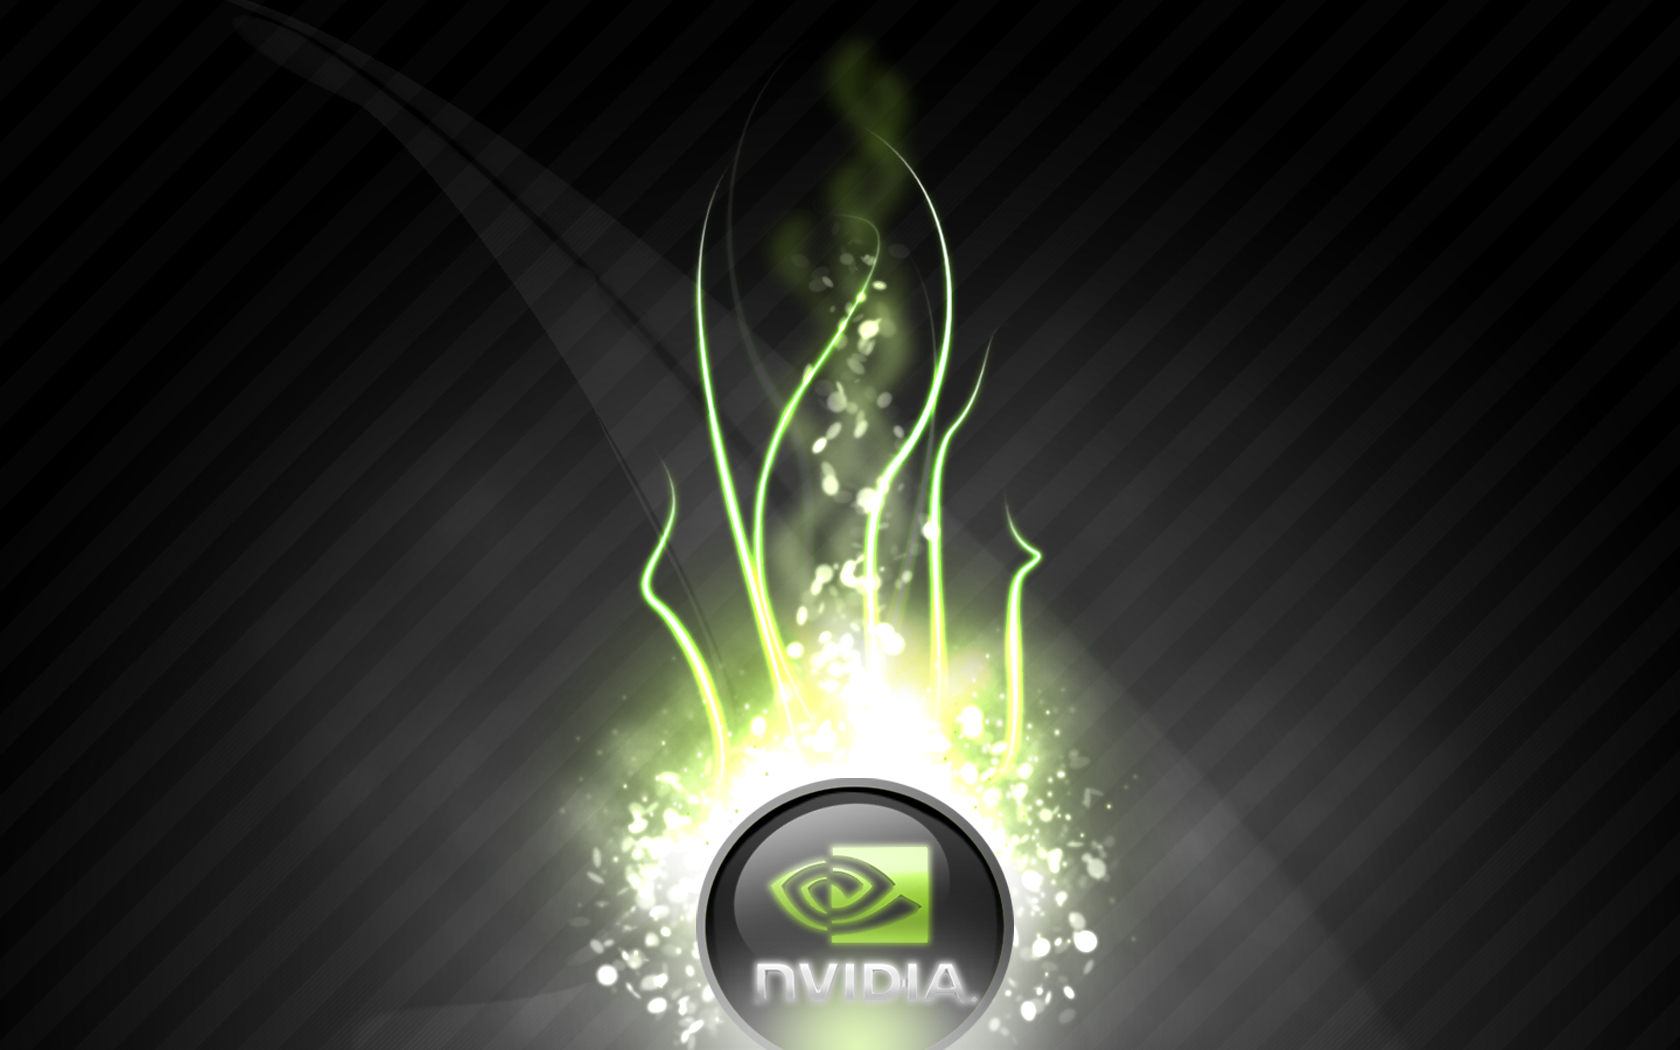 Nvidia_glow REMADE by invaderjohn